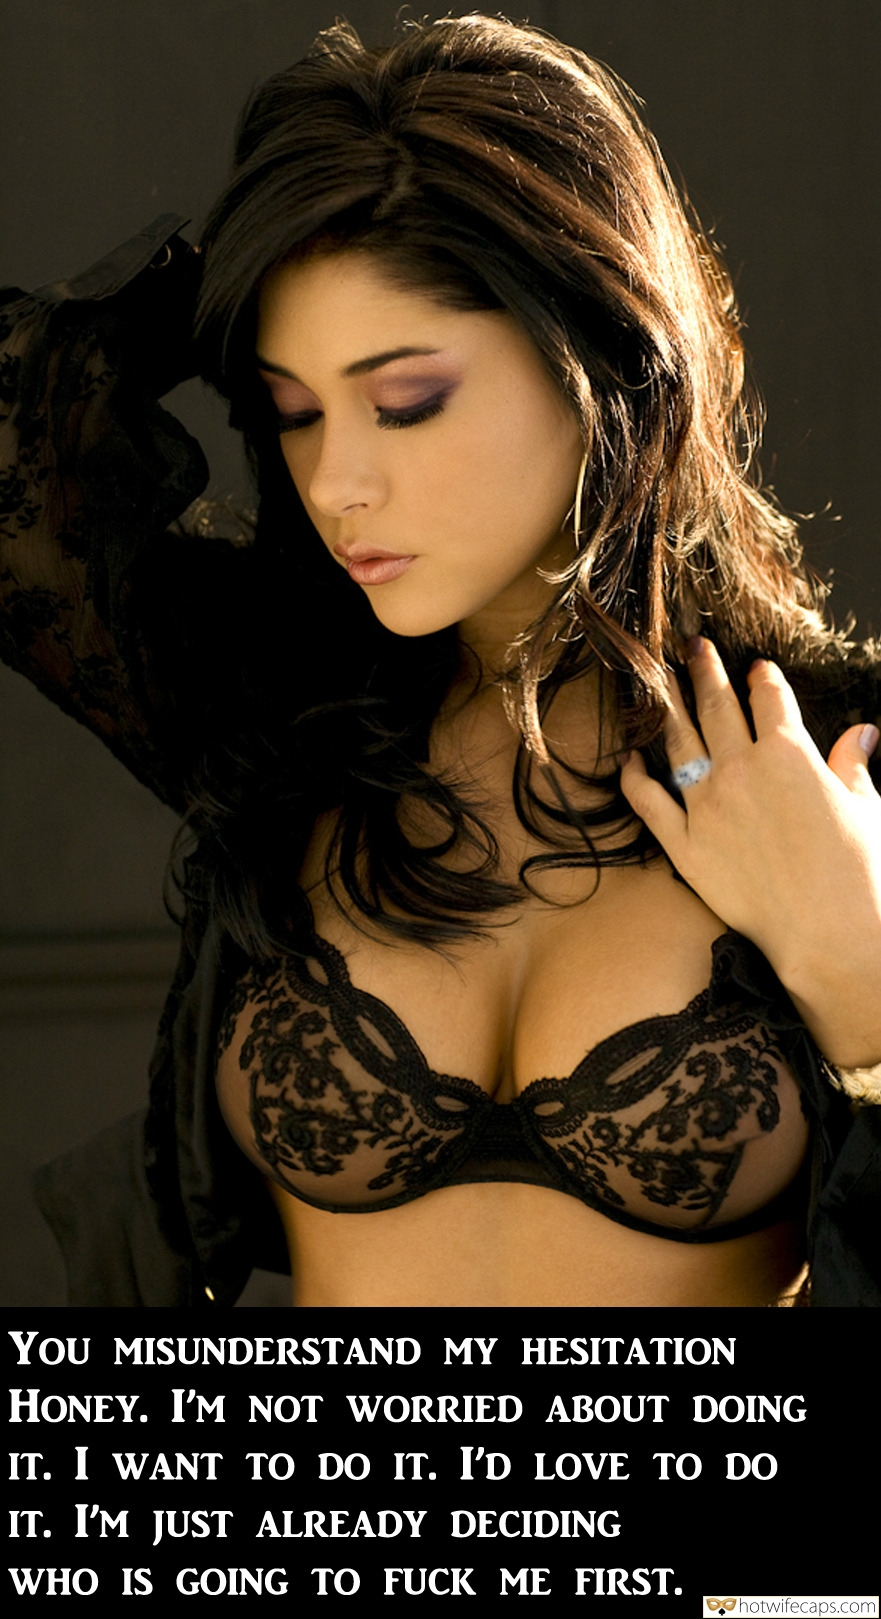 SFW Caps  hotwife caption: You MISUNDERSTAND MY HESITATION HONEY. I'M NOT WORRIED ABOUT DOING IT. I WANT TO DO IT. I'D LOVE TO DO IT. I'M JUST ALREADY DECIDING WHO IS GOING TO FUCK ME FIRST. Latina Poses in See Through Black Bra